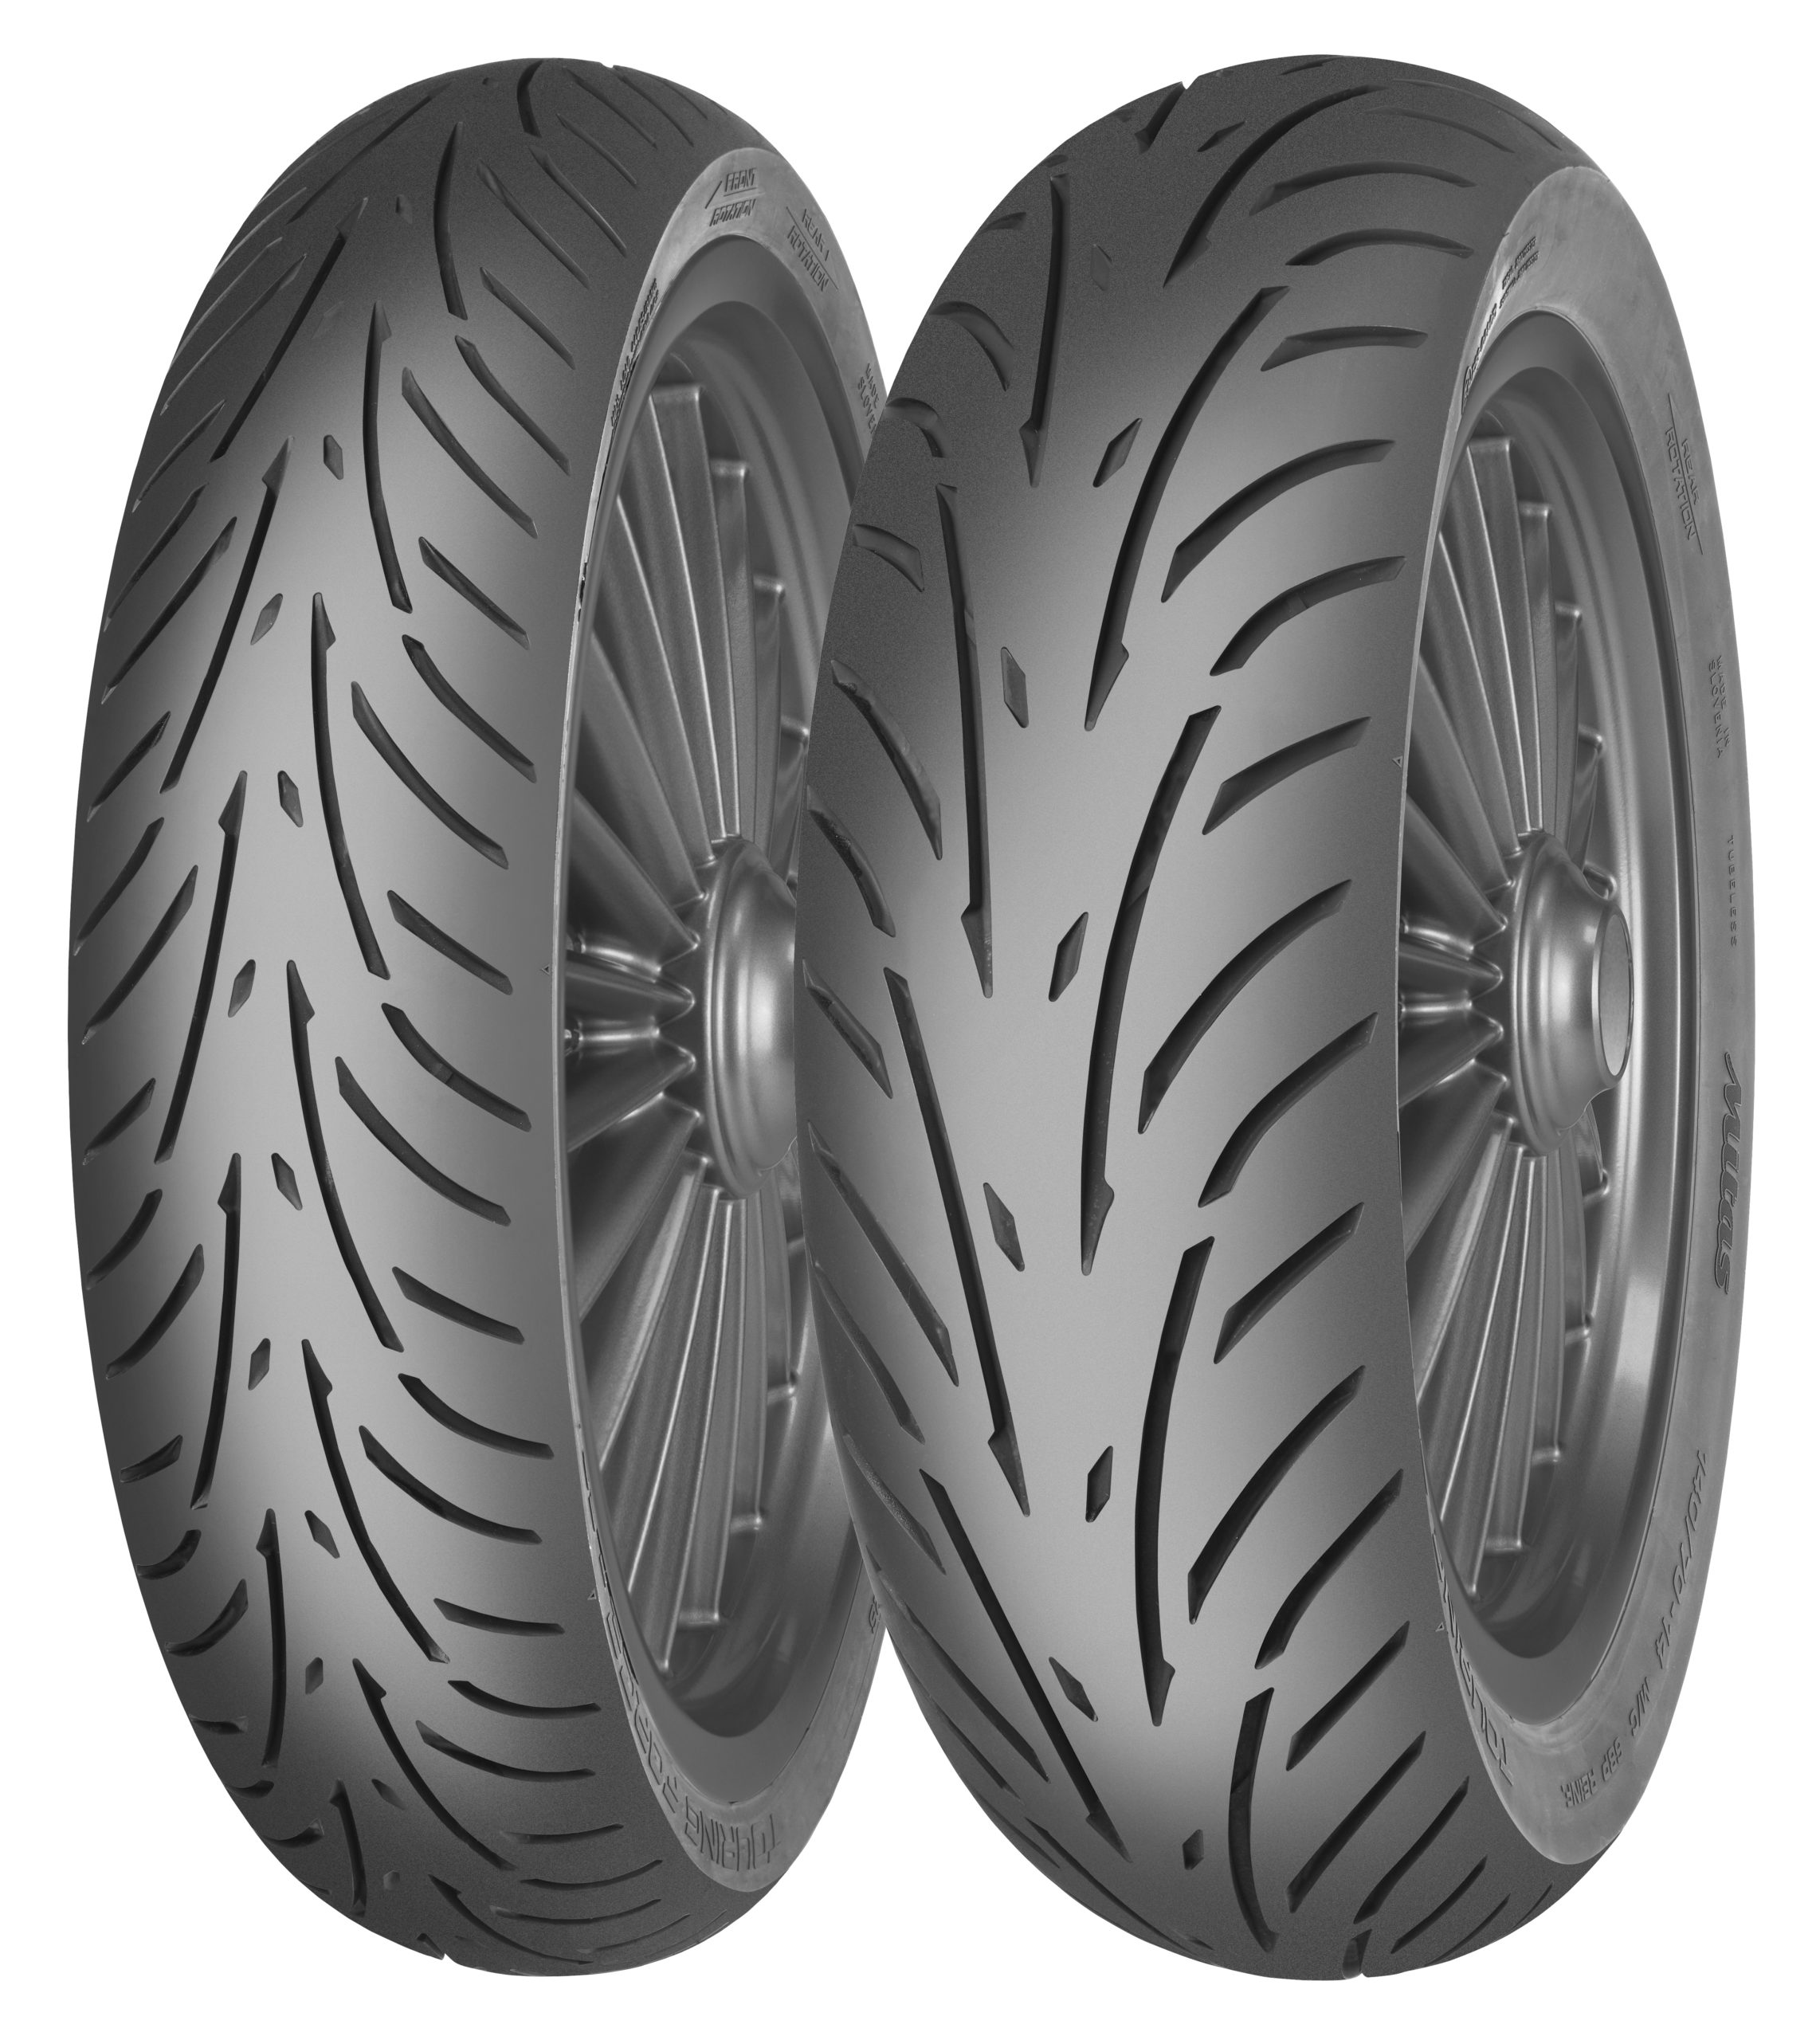 Anvelopa 140/60-14 64P TOURING FORCE-SC R TL MITAS